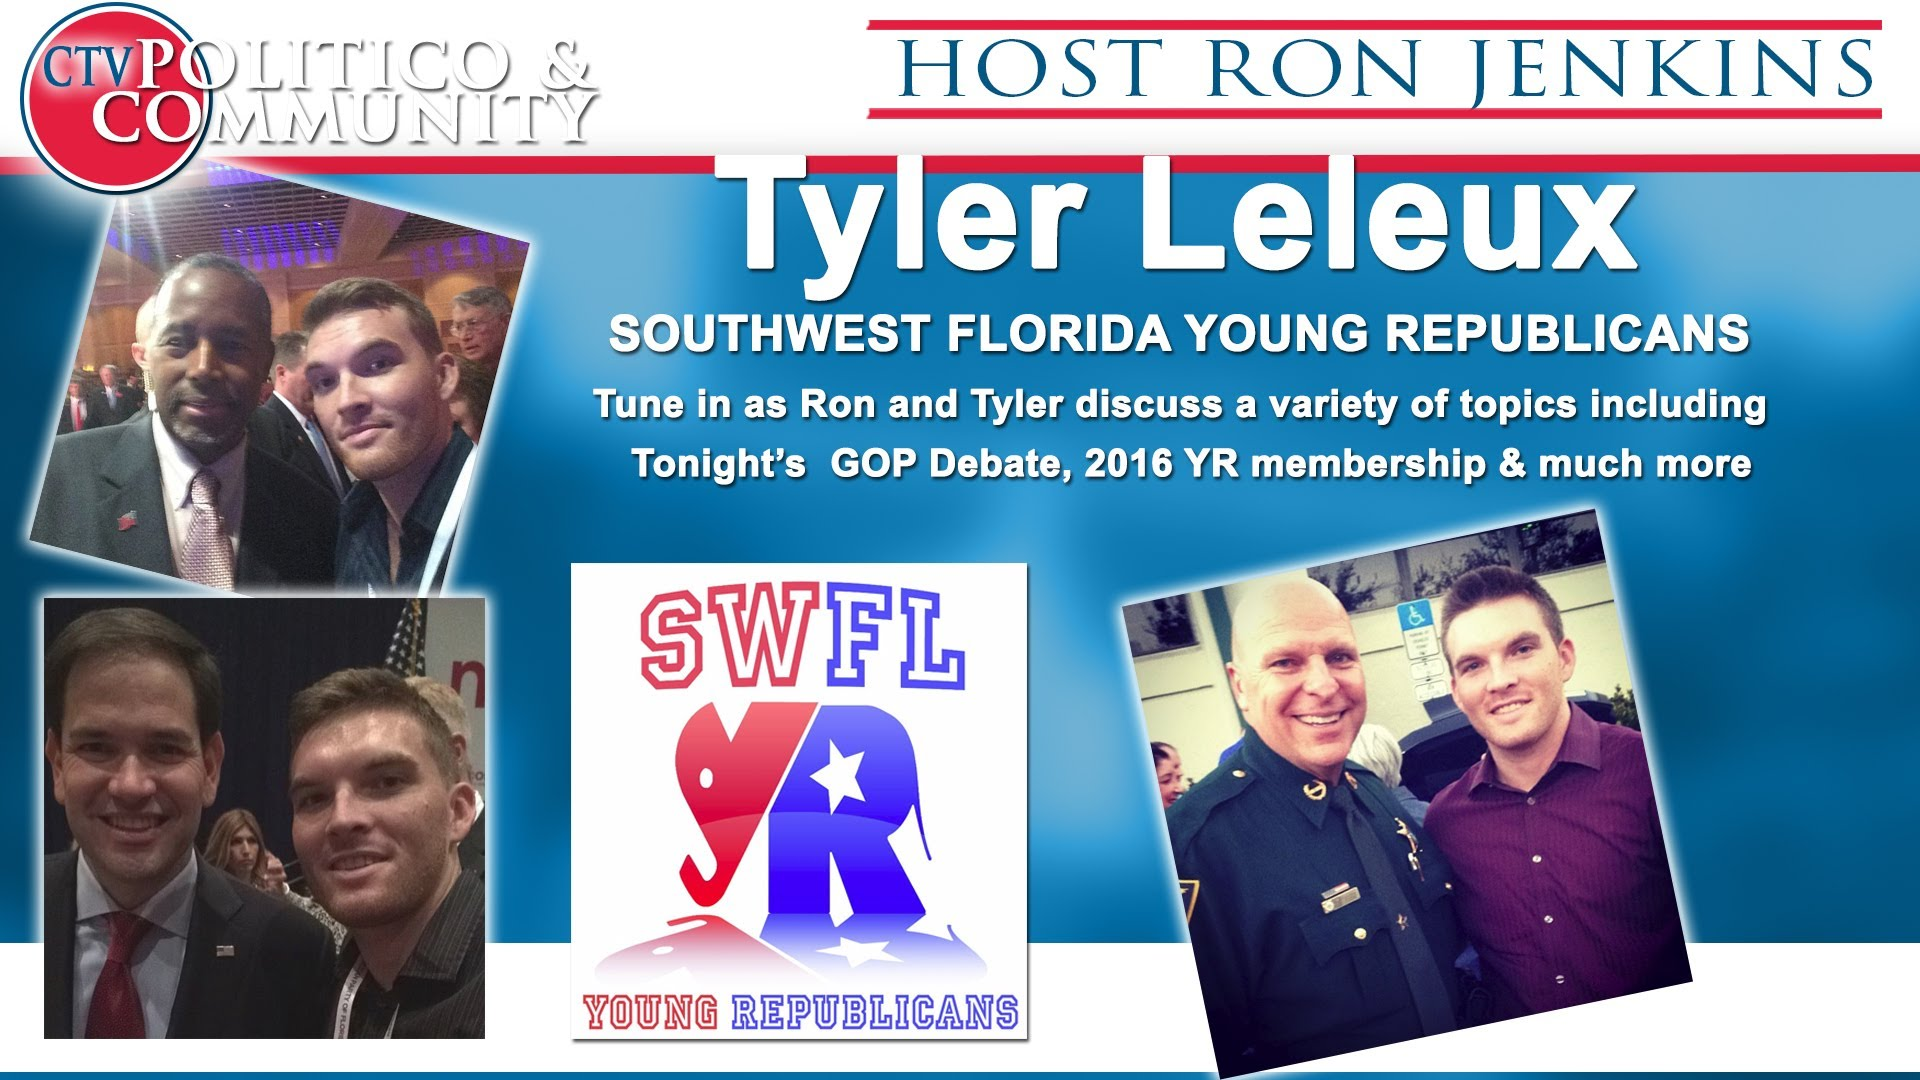 [12-16-2015] CTV Politico & Community with guest  Tyler Leleux  of The SW Florida Young Reoublicans